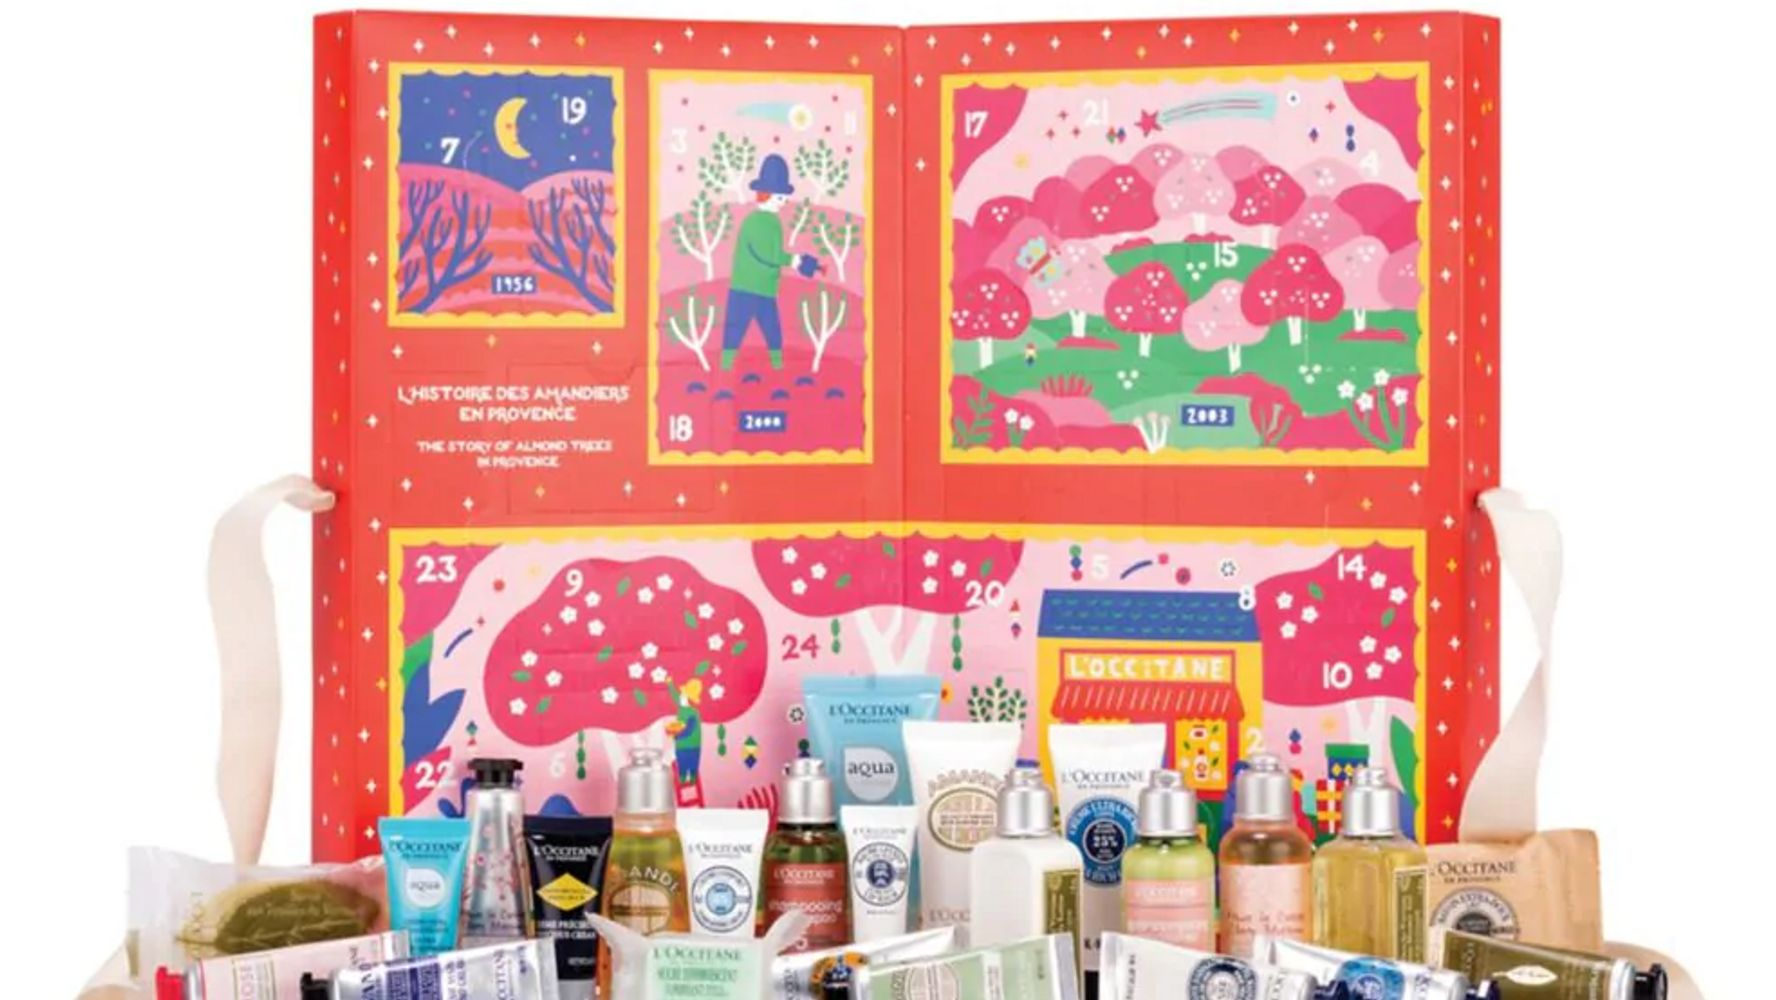 The Best Beauty Advent Calendars For Christmas 2019